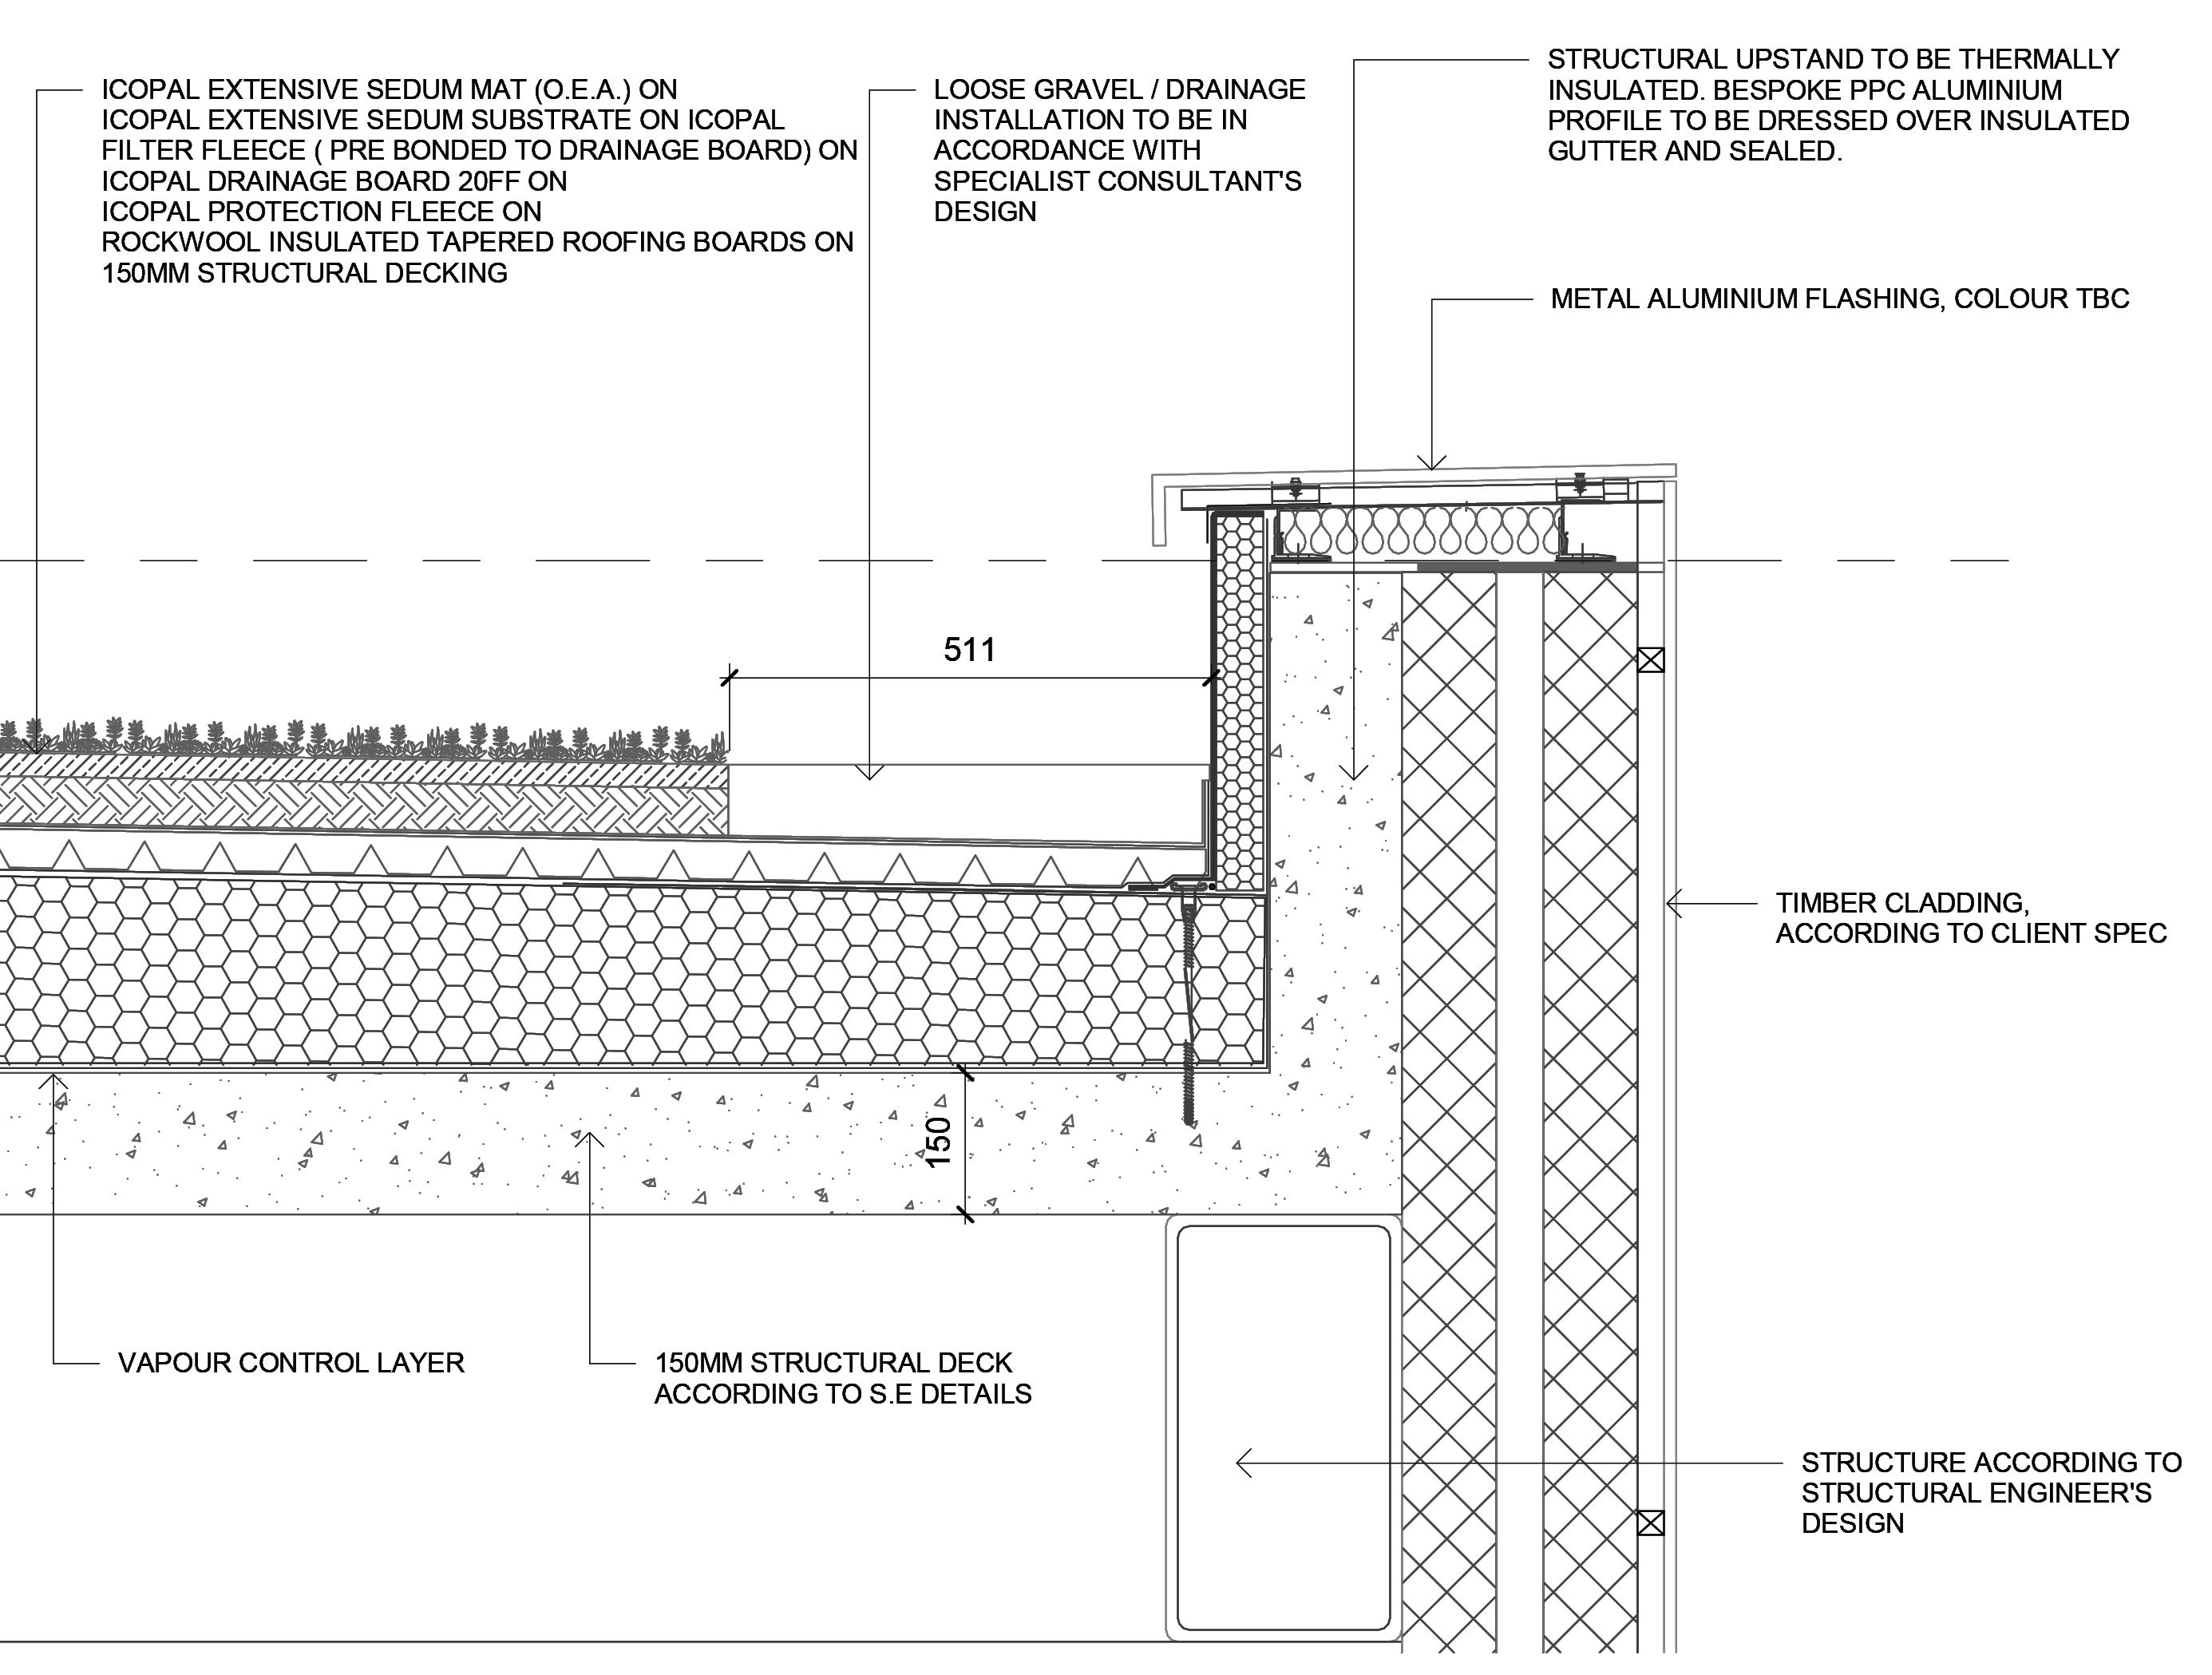 Building regulations drawings for Derbyshire projects